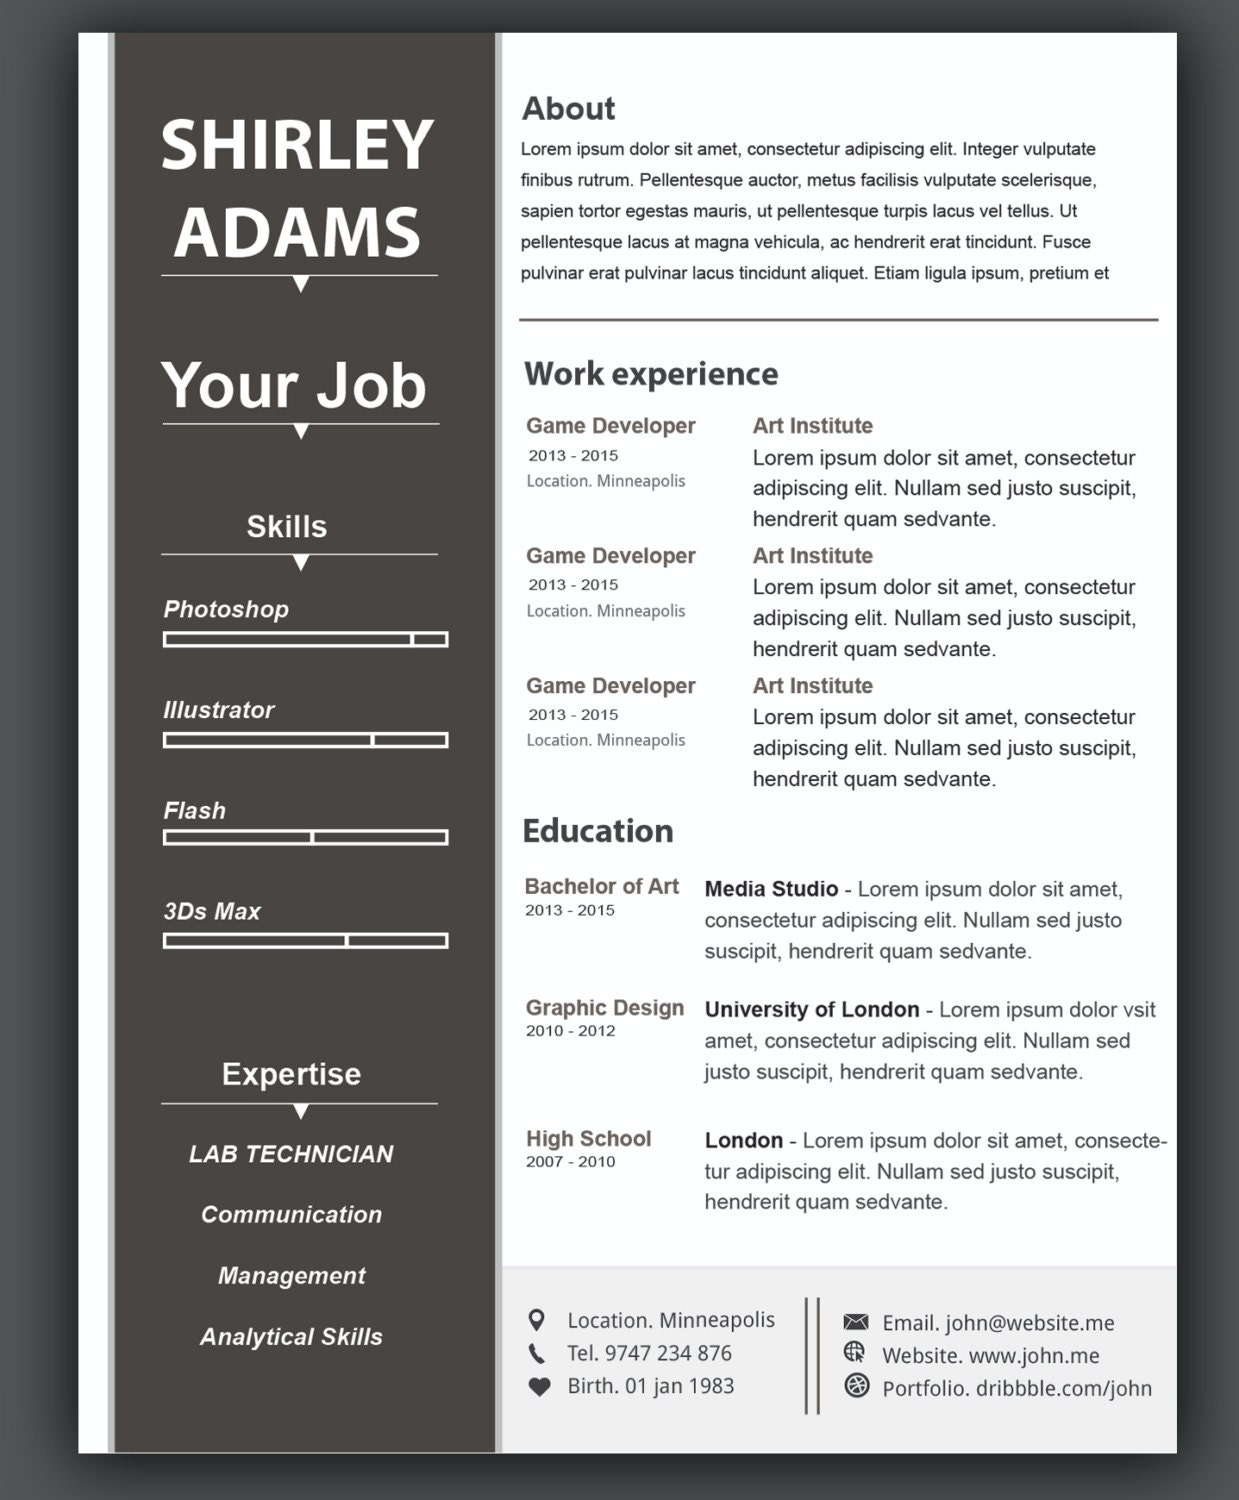 custom resume template cv template word resume template photoshop resume template ai resume. Black Bedroom Furniture Sets. Home Design Ideas